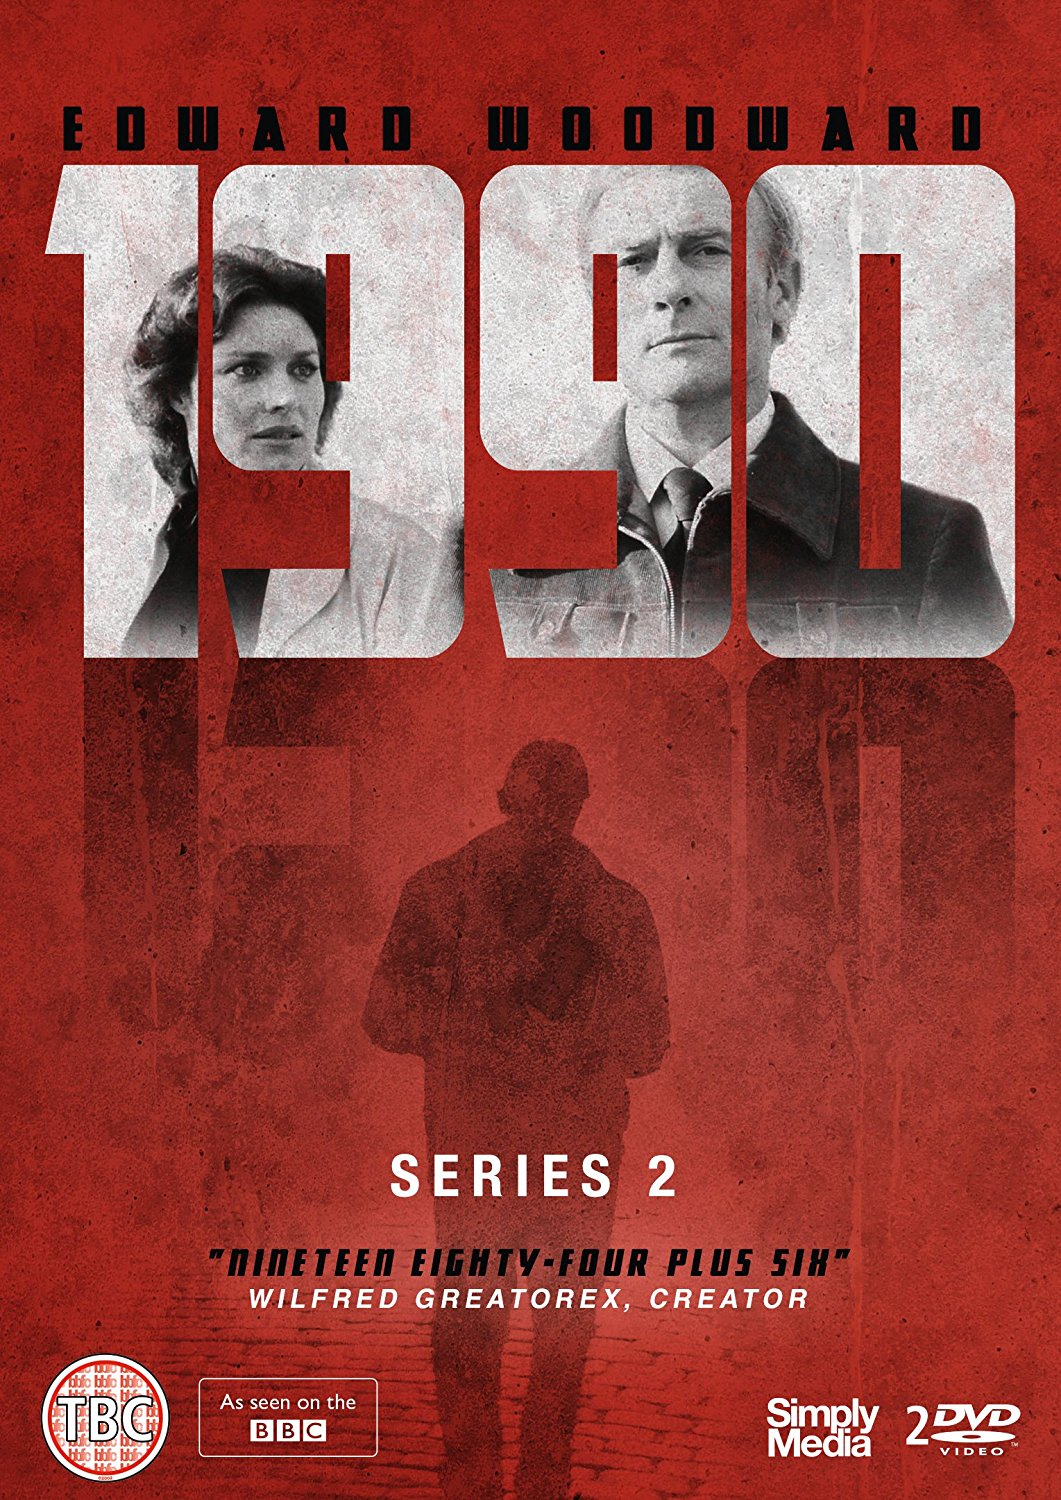 1990 - Series 2 - DVD cover